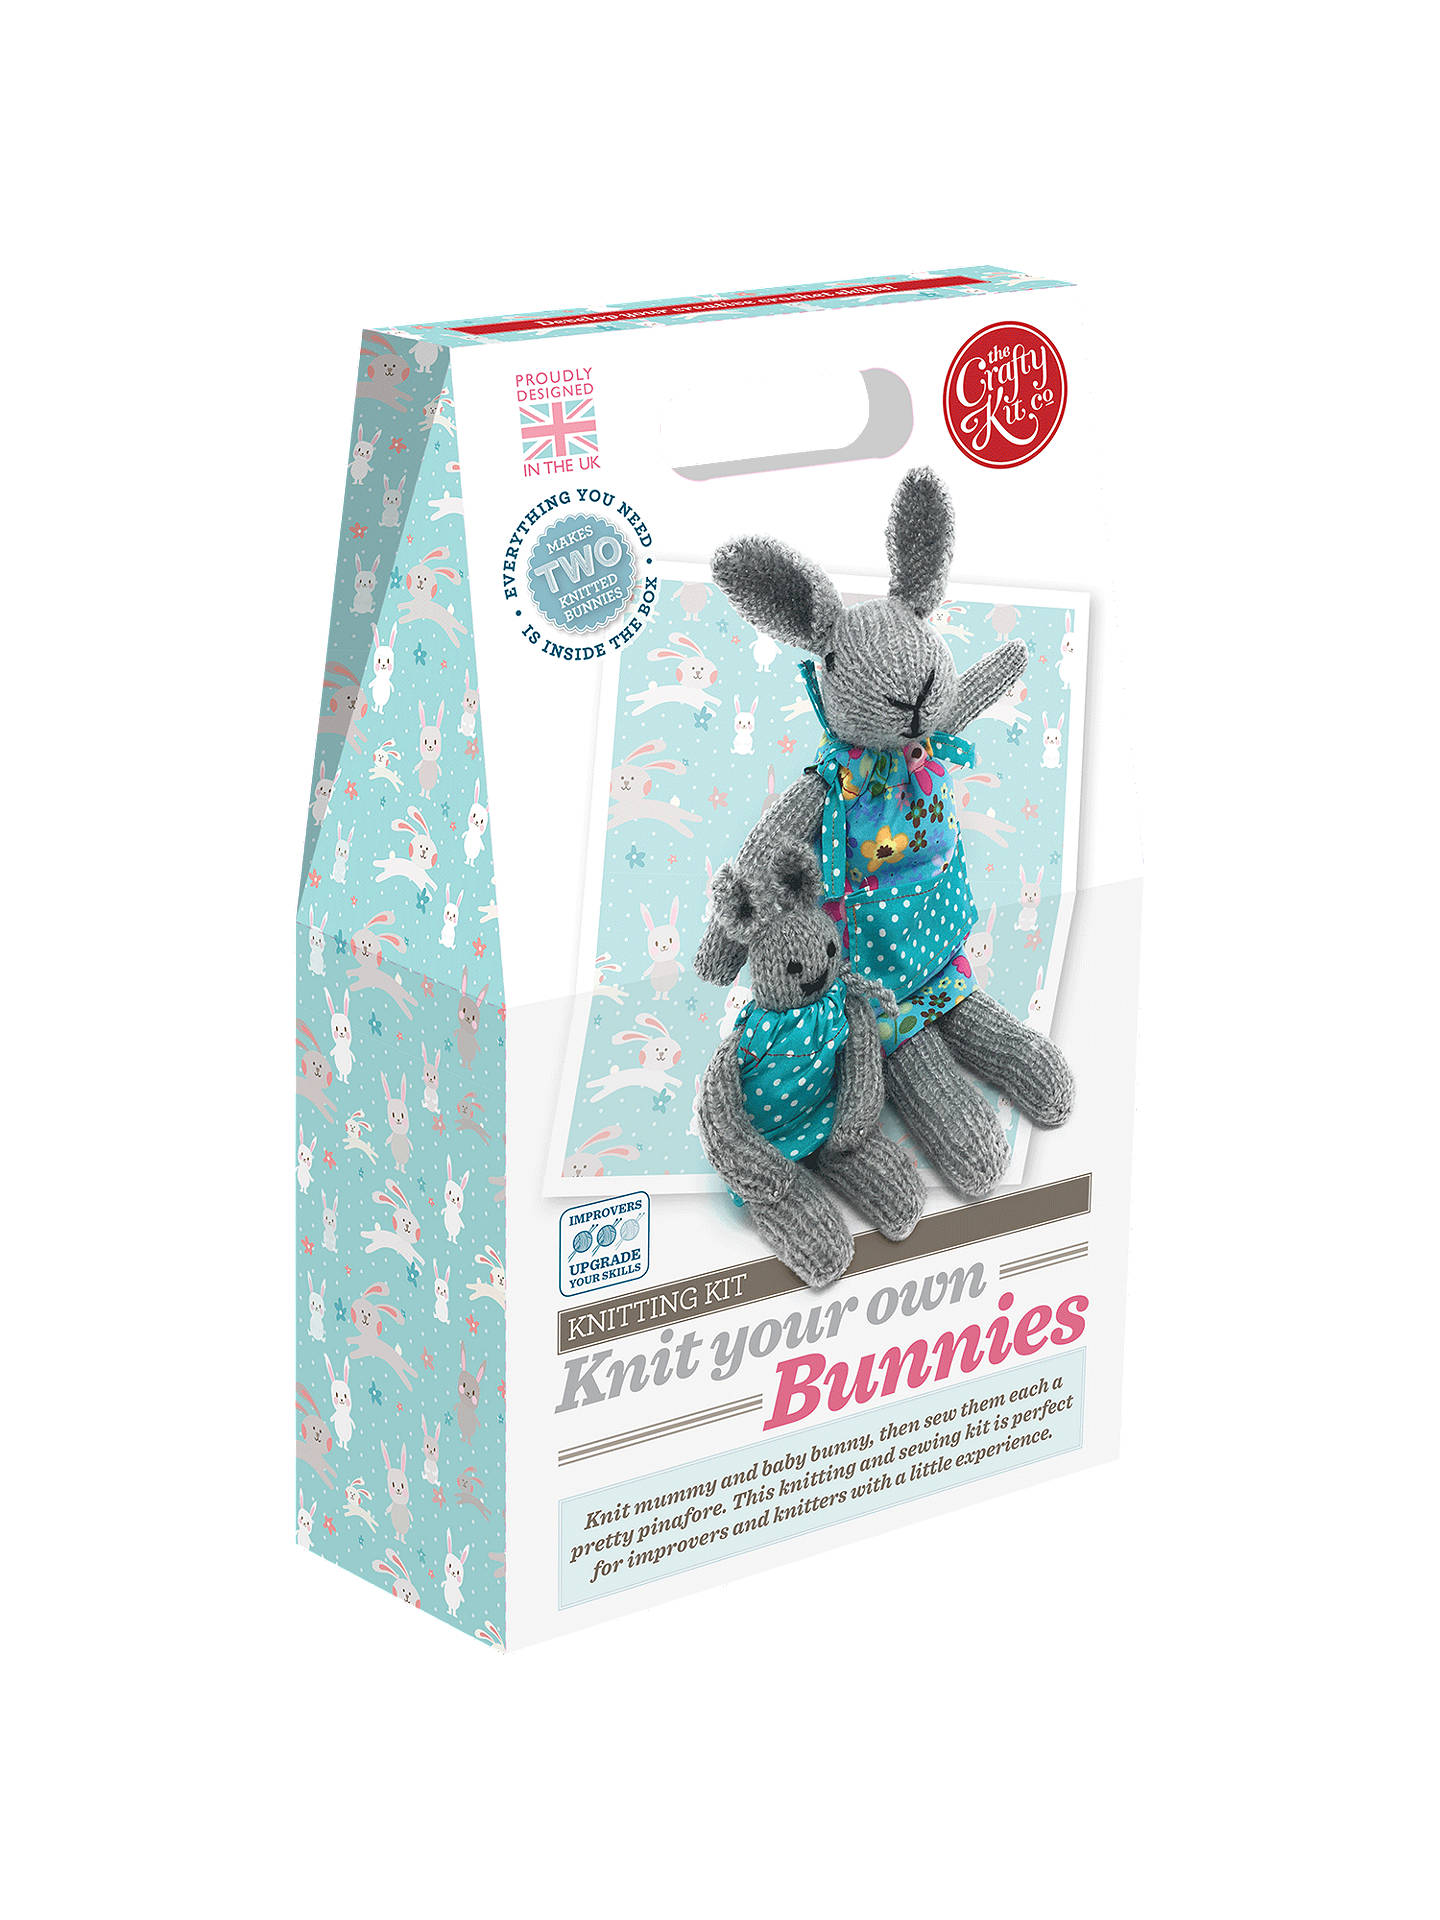 TEDDY BEAR KNITTING KIT BOYS MENS Learn to Knit your own BLUE TEDDY GIFT BOX Inc